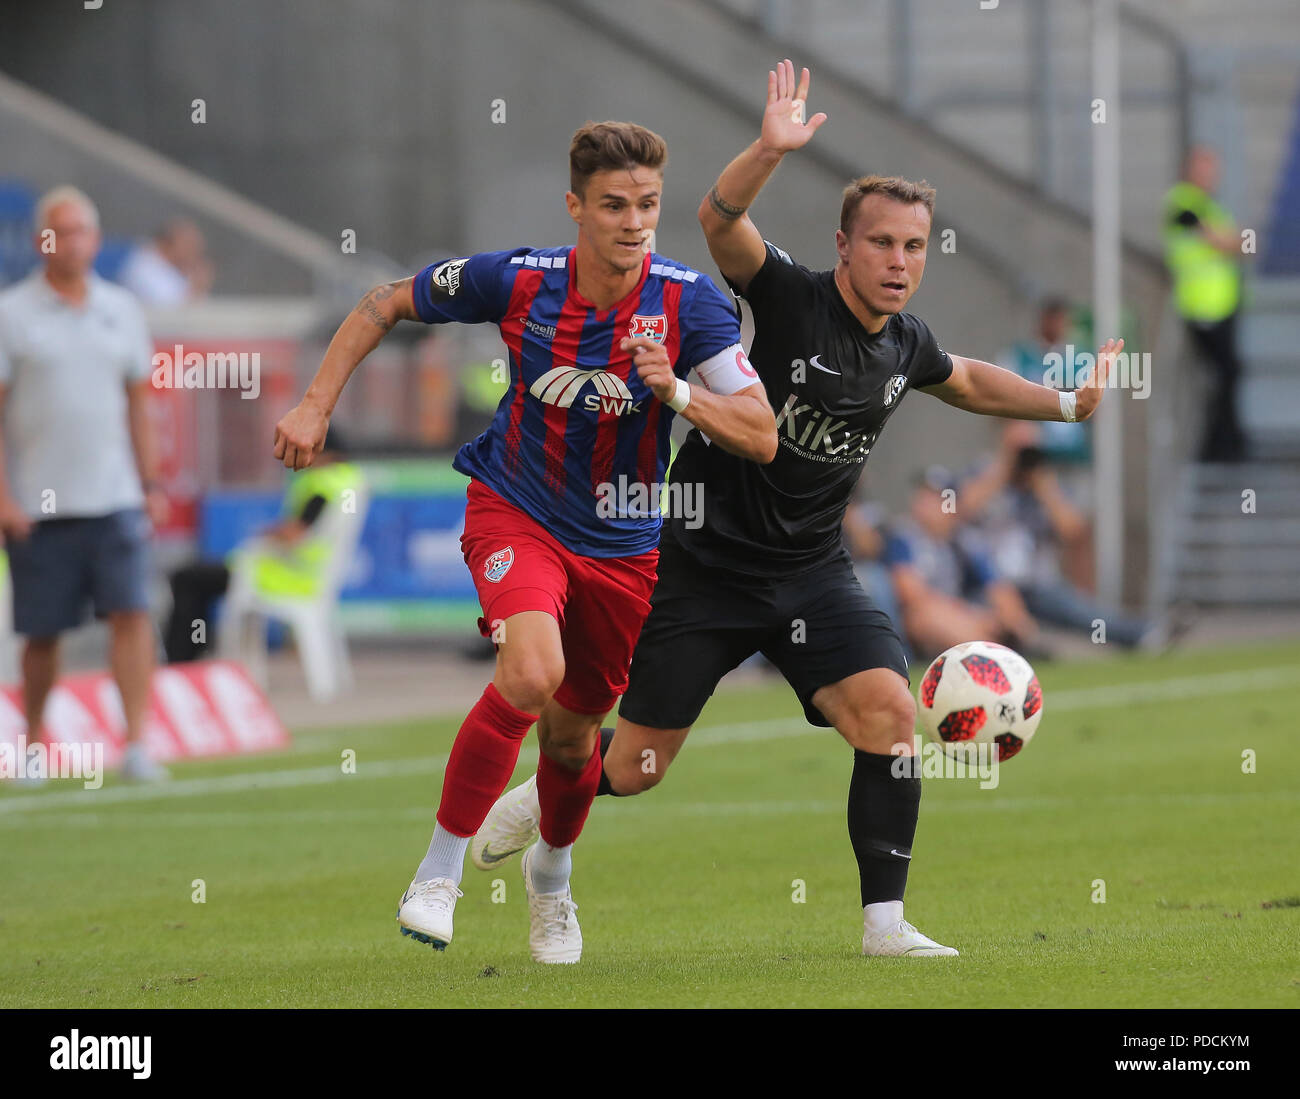 Duisburg, Germany. 08th Aug, 2018. Duisburg, Germany August 8 2018, 3rd league matchday 3, KFC Uerdingen 05 vs SV Meppen: Mario Erb (KFC), Nico Granatowski (SVM) in competition. Credit: Juergen Schwarz/Alamy Live News - Stock Image